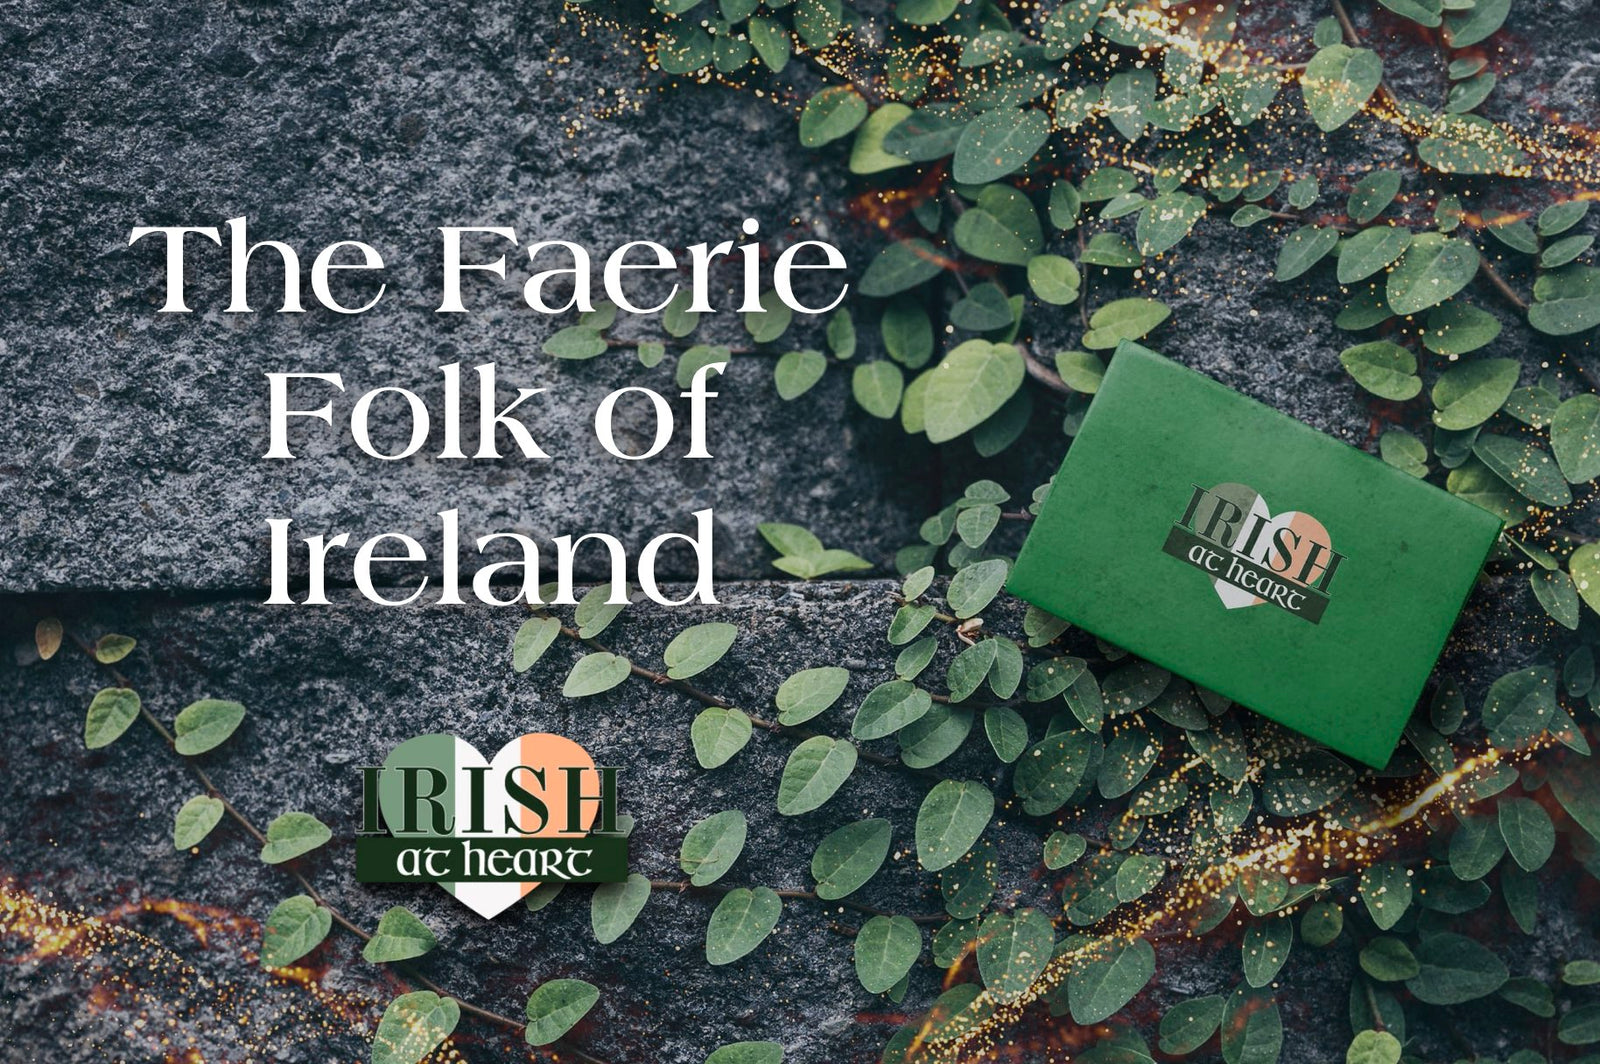 The Faerie Folk of Ireland